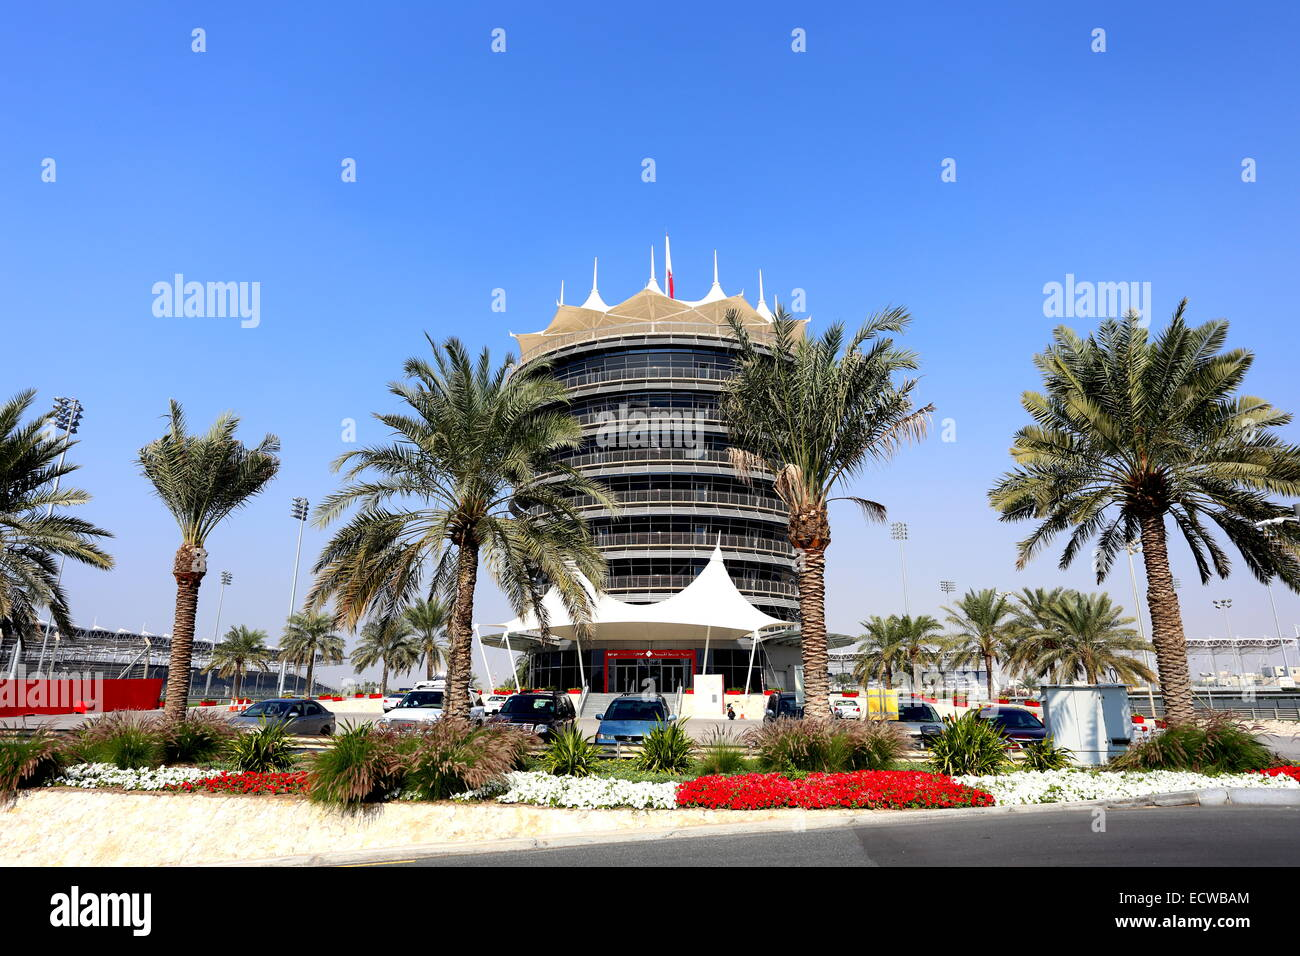 VIP tower with palm trees in front at the Formula 1 circuit, Sakhir, Kingdom of Bahrain - Stock Image